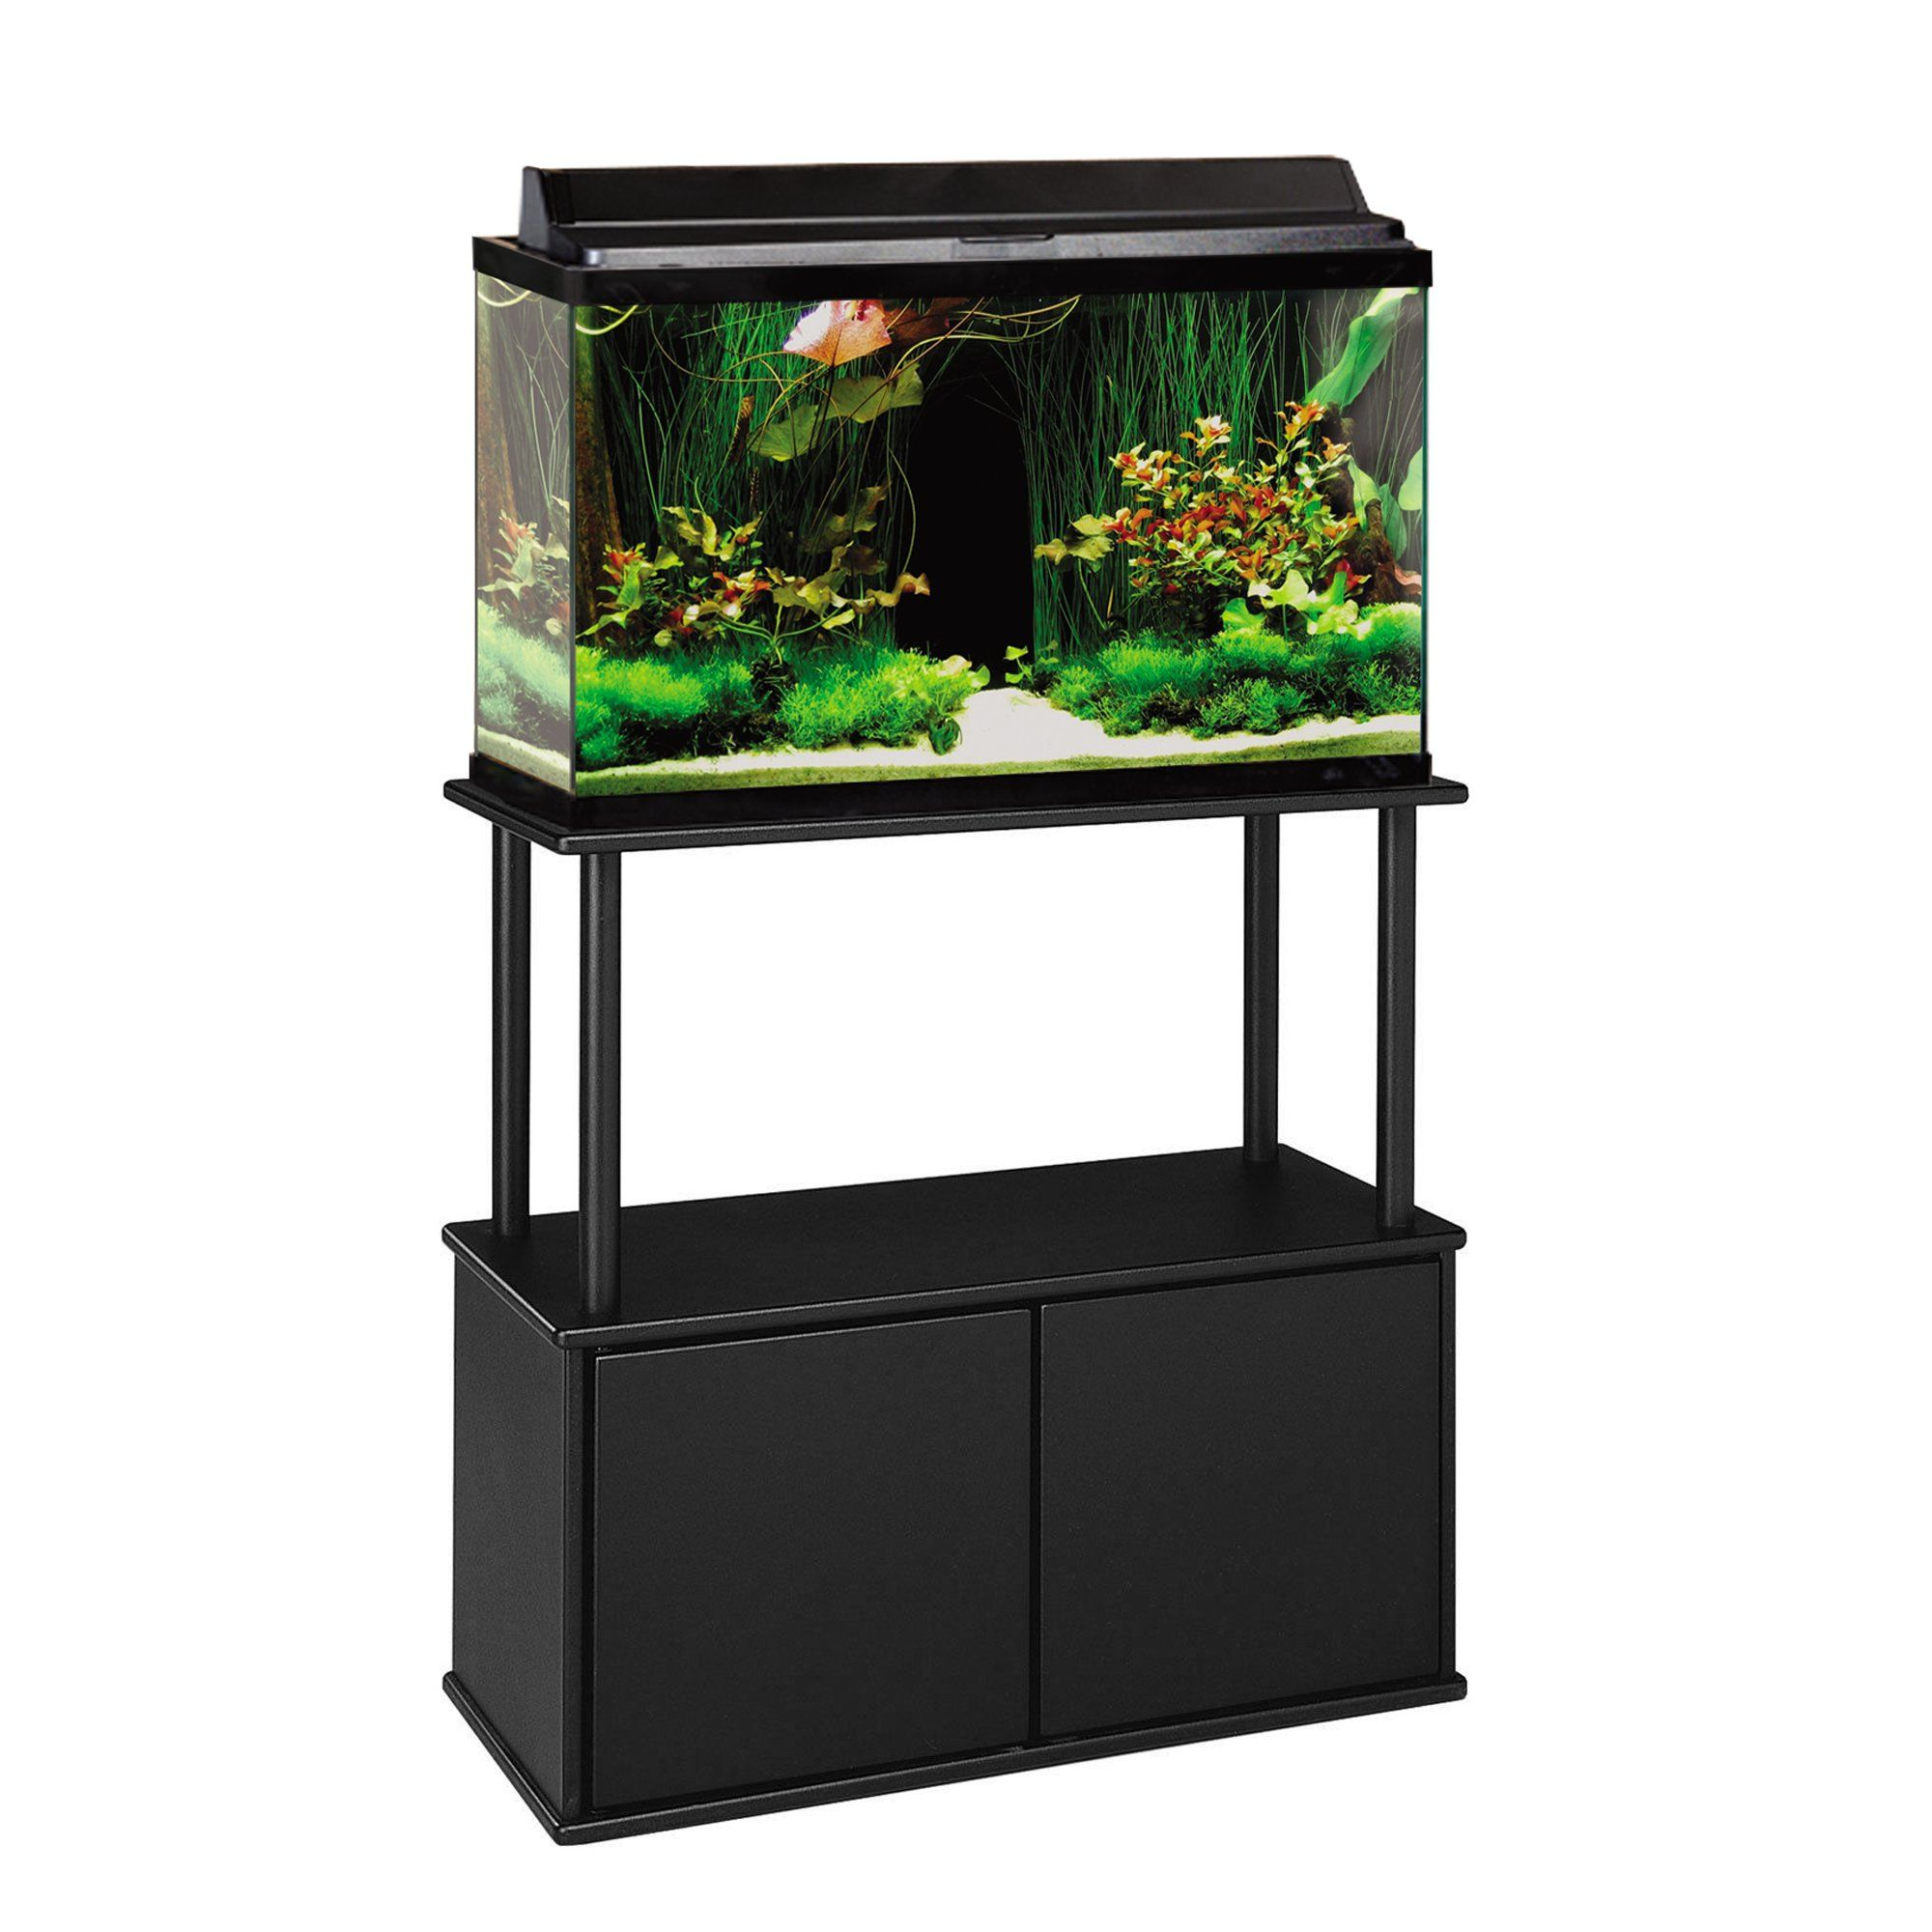 Black stand with storage compartment. Fits 20 and 29